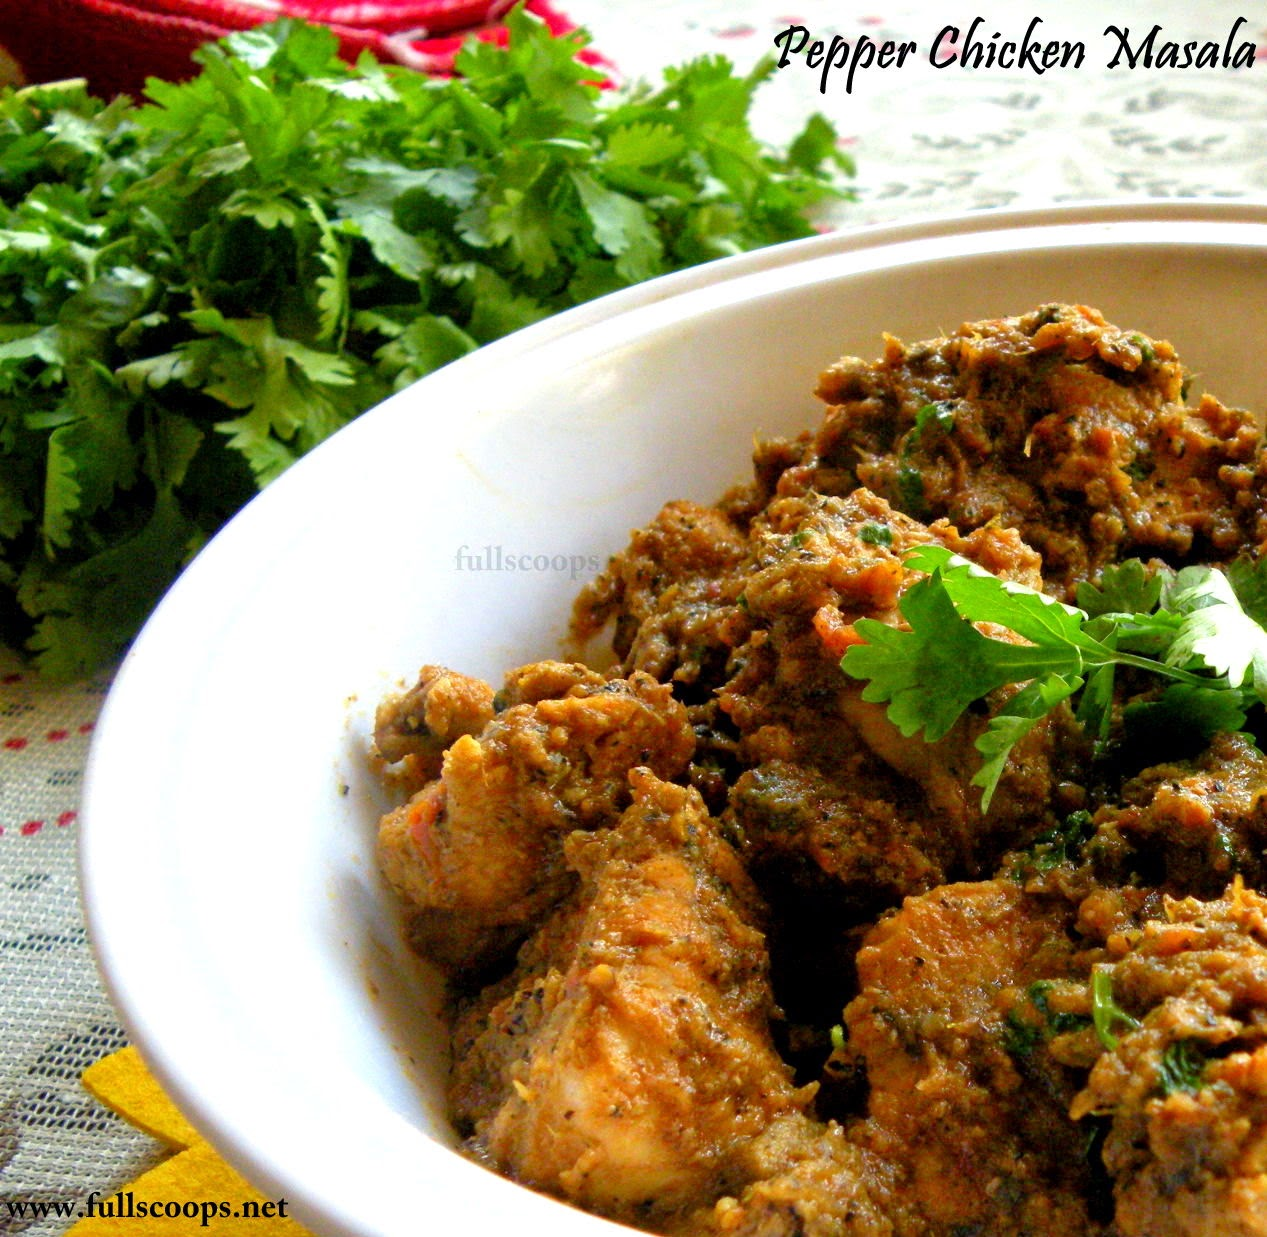 Pepper Chicken Masala